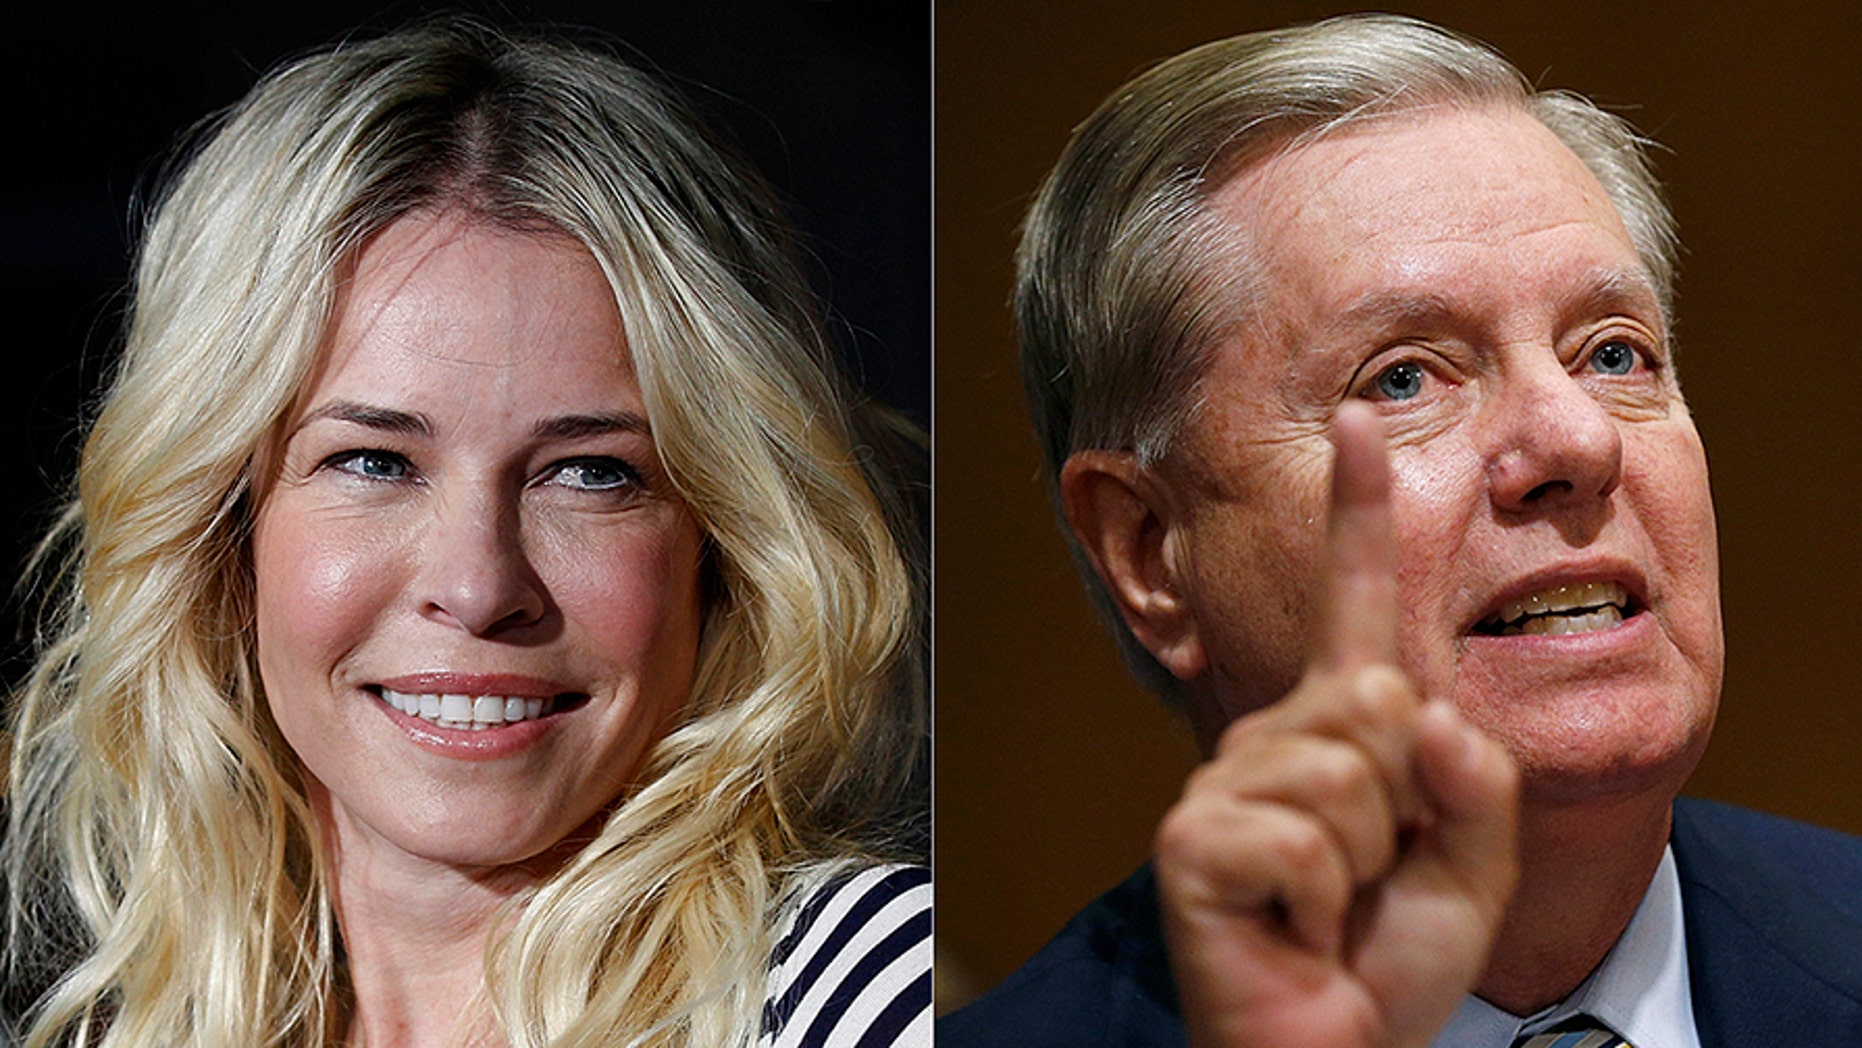 LGBTQ groups are unusually silent over Chelsea Handler's tweet to Sen. Lindsey Graham.